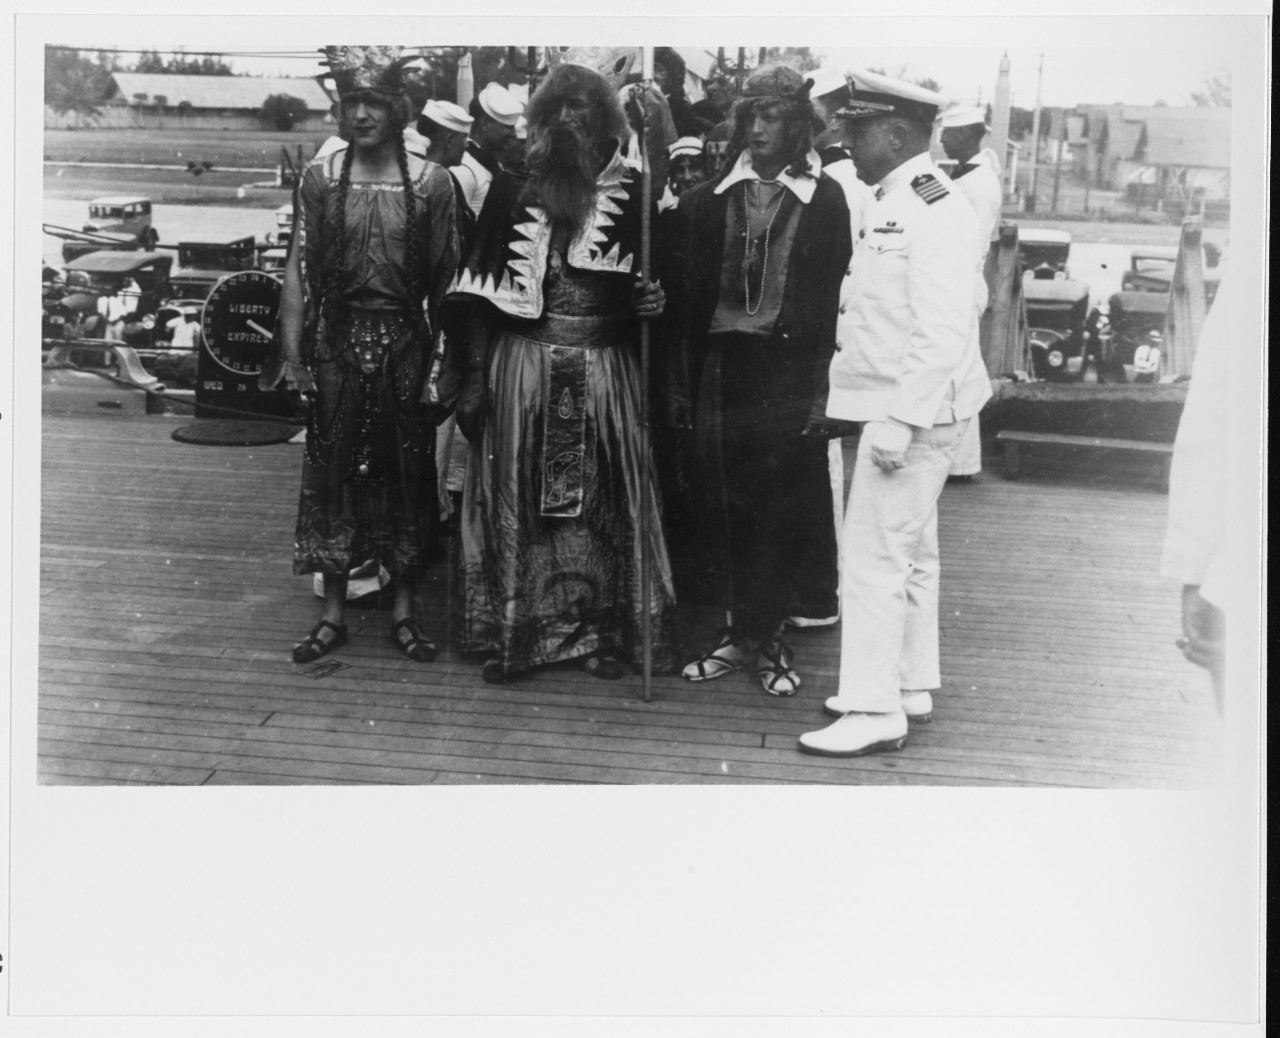 Capt. Manley H. Simons, Chicago's commanding officer, welcomes King Neptune and his court on board the cruiser while she crosses the equator, not far from Pago Pago, 1931. Note the liberty clock in the background. (Courtesy of Wiley H. Smith, Naval History and Heritage Command Photograph NH 93456)